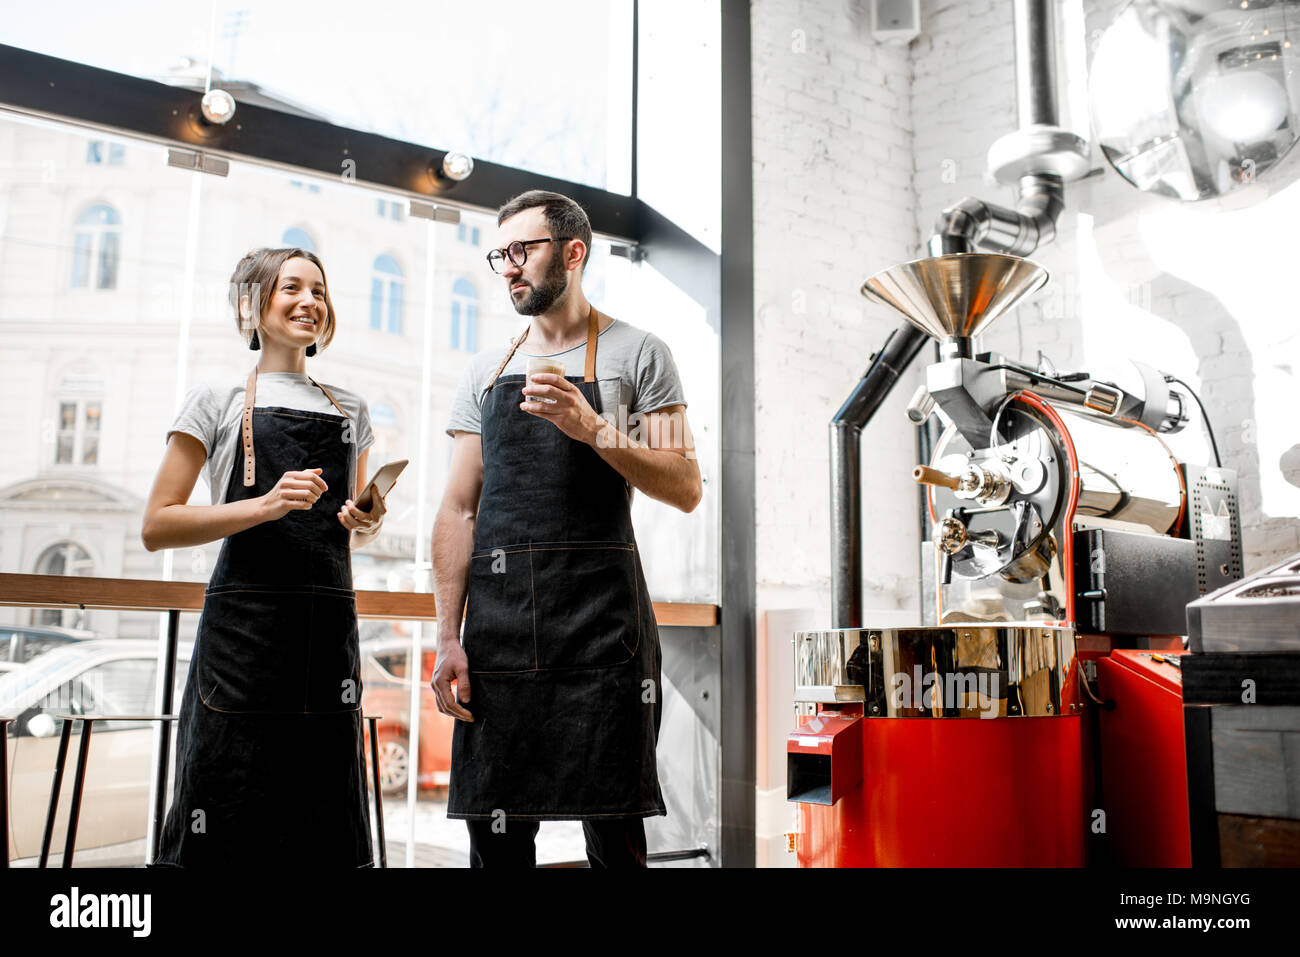 Baristas talking in the coffee shop - Stock Image